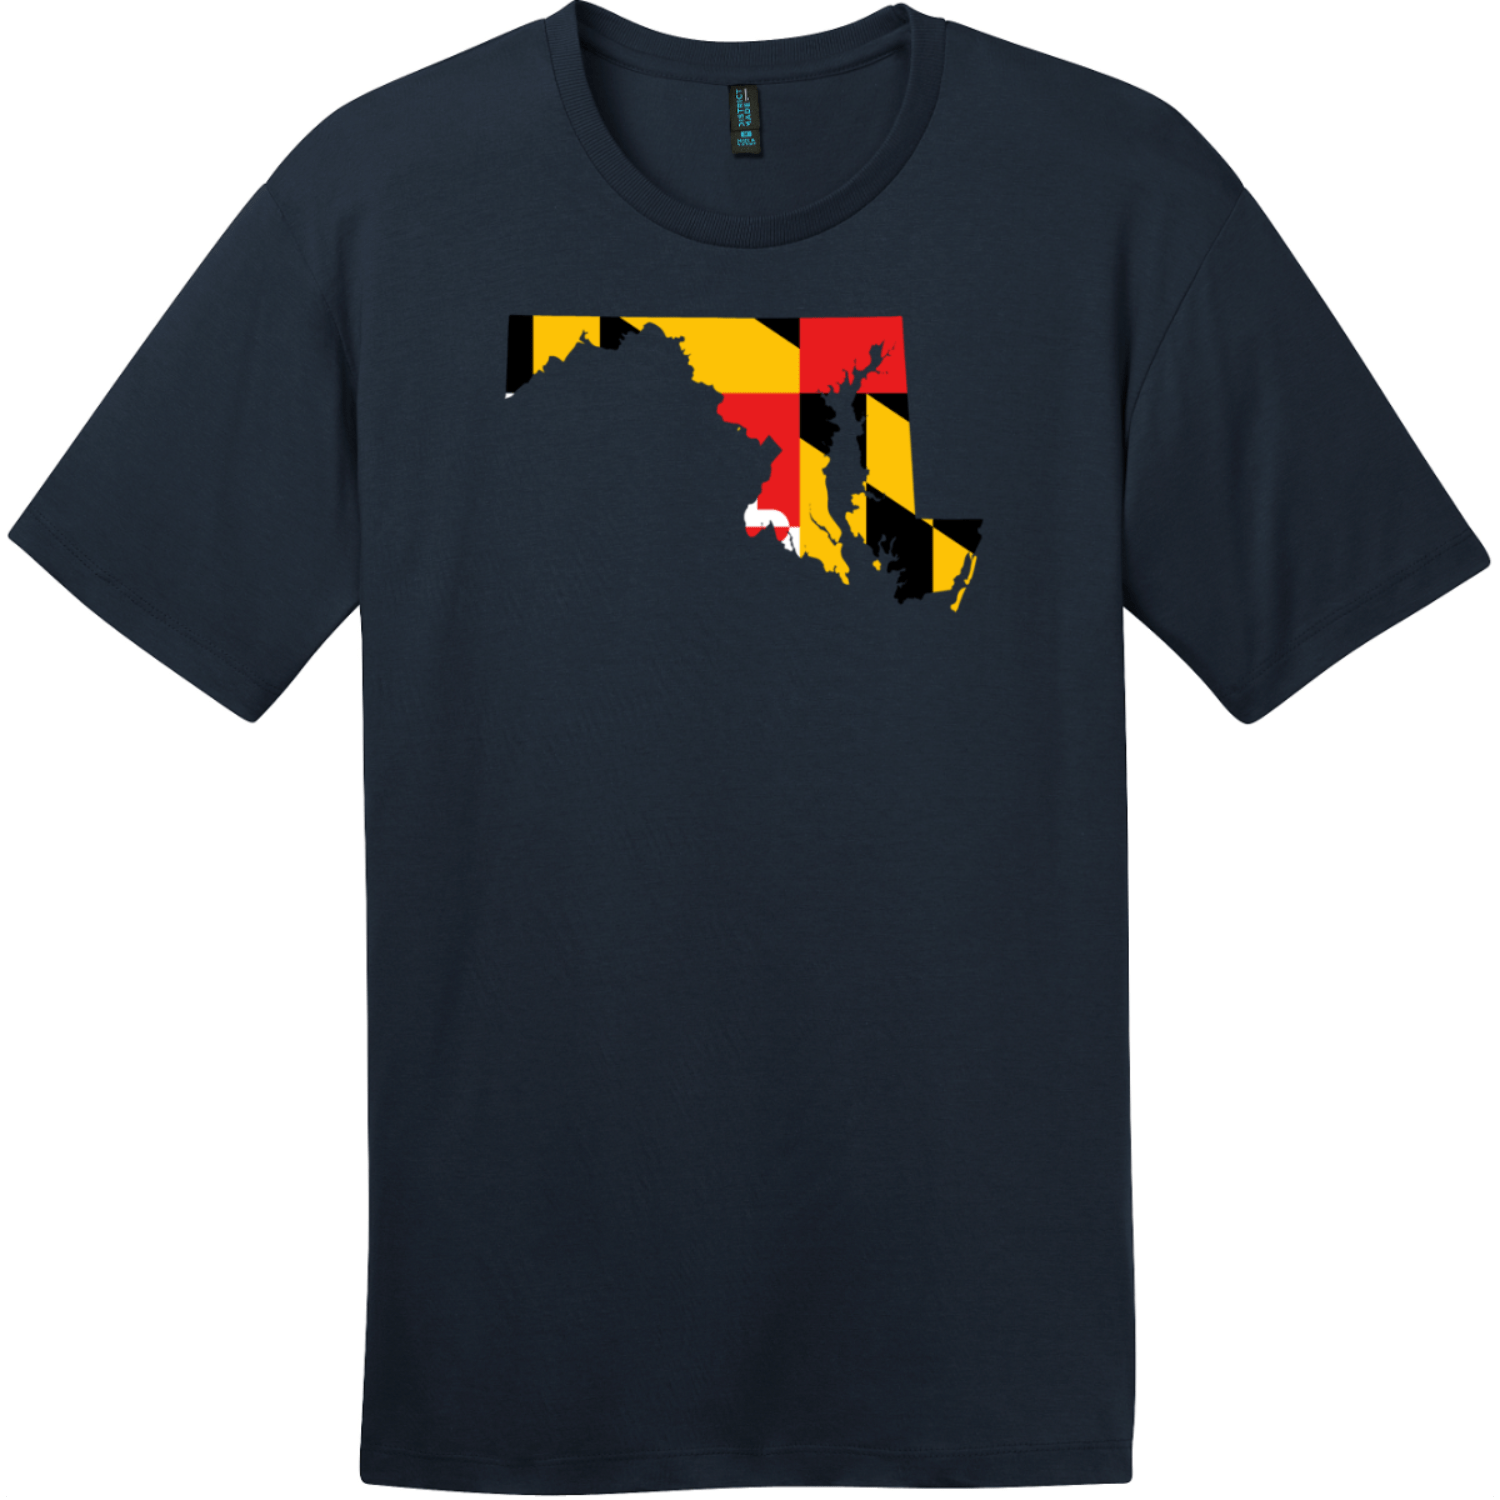 Maryland State Shaped Flag T-Shirt New Navy District Perfect Weight Tee DT104